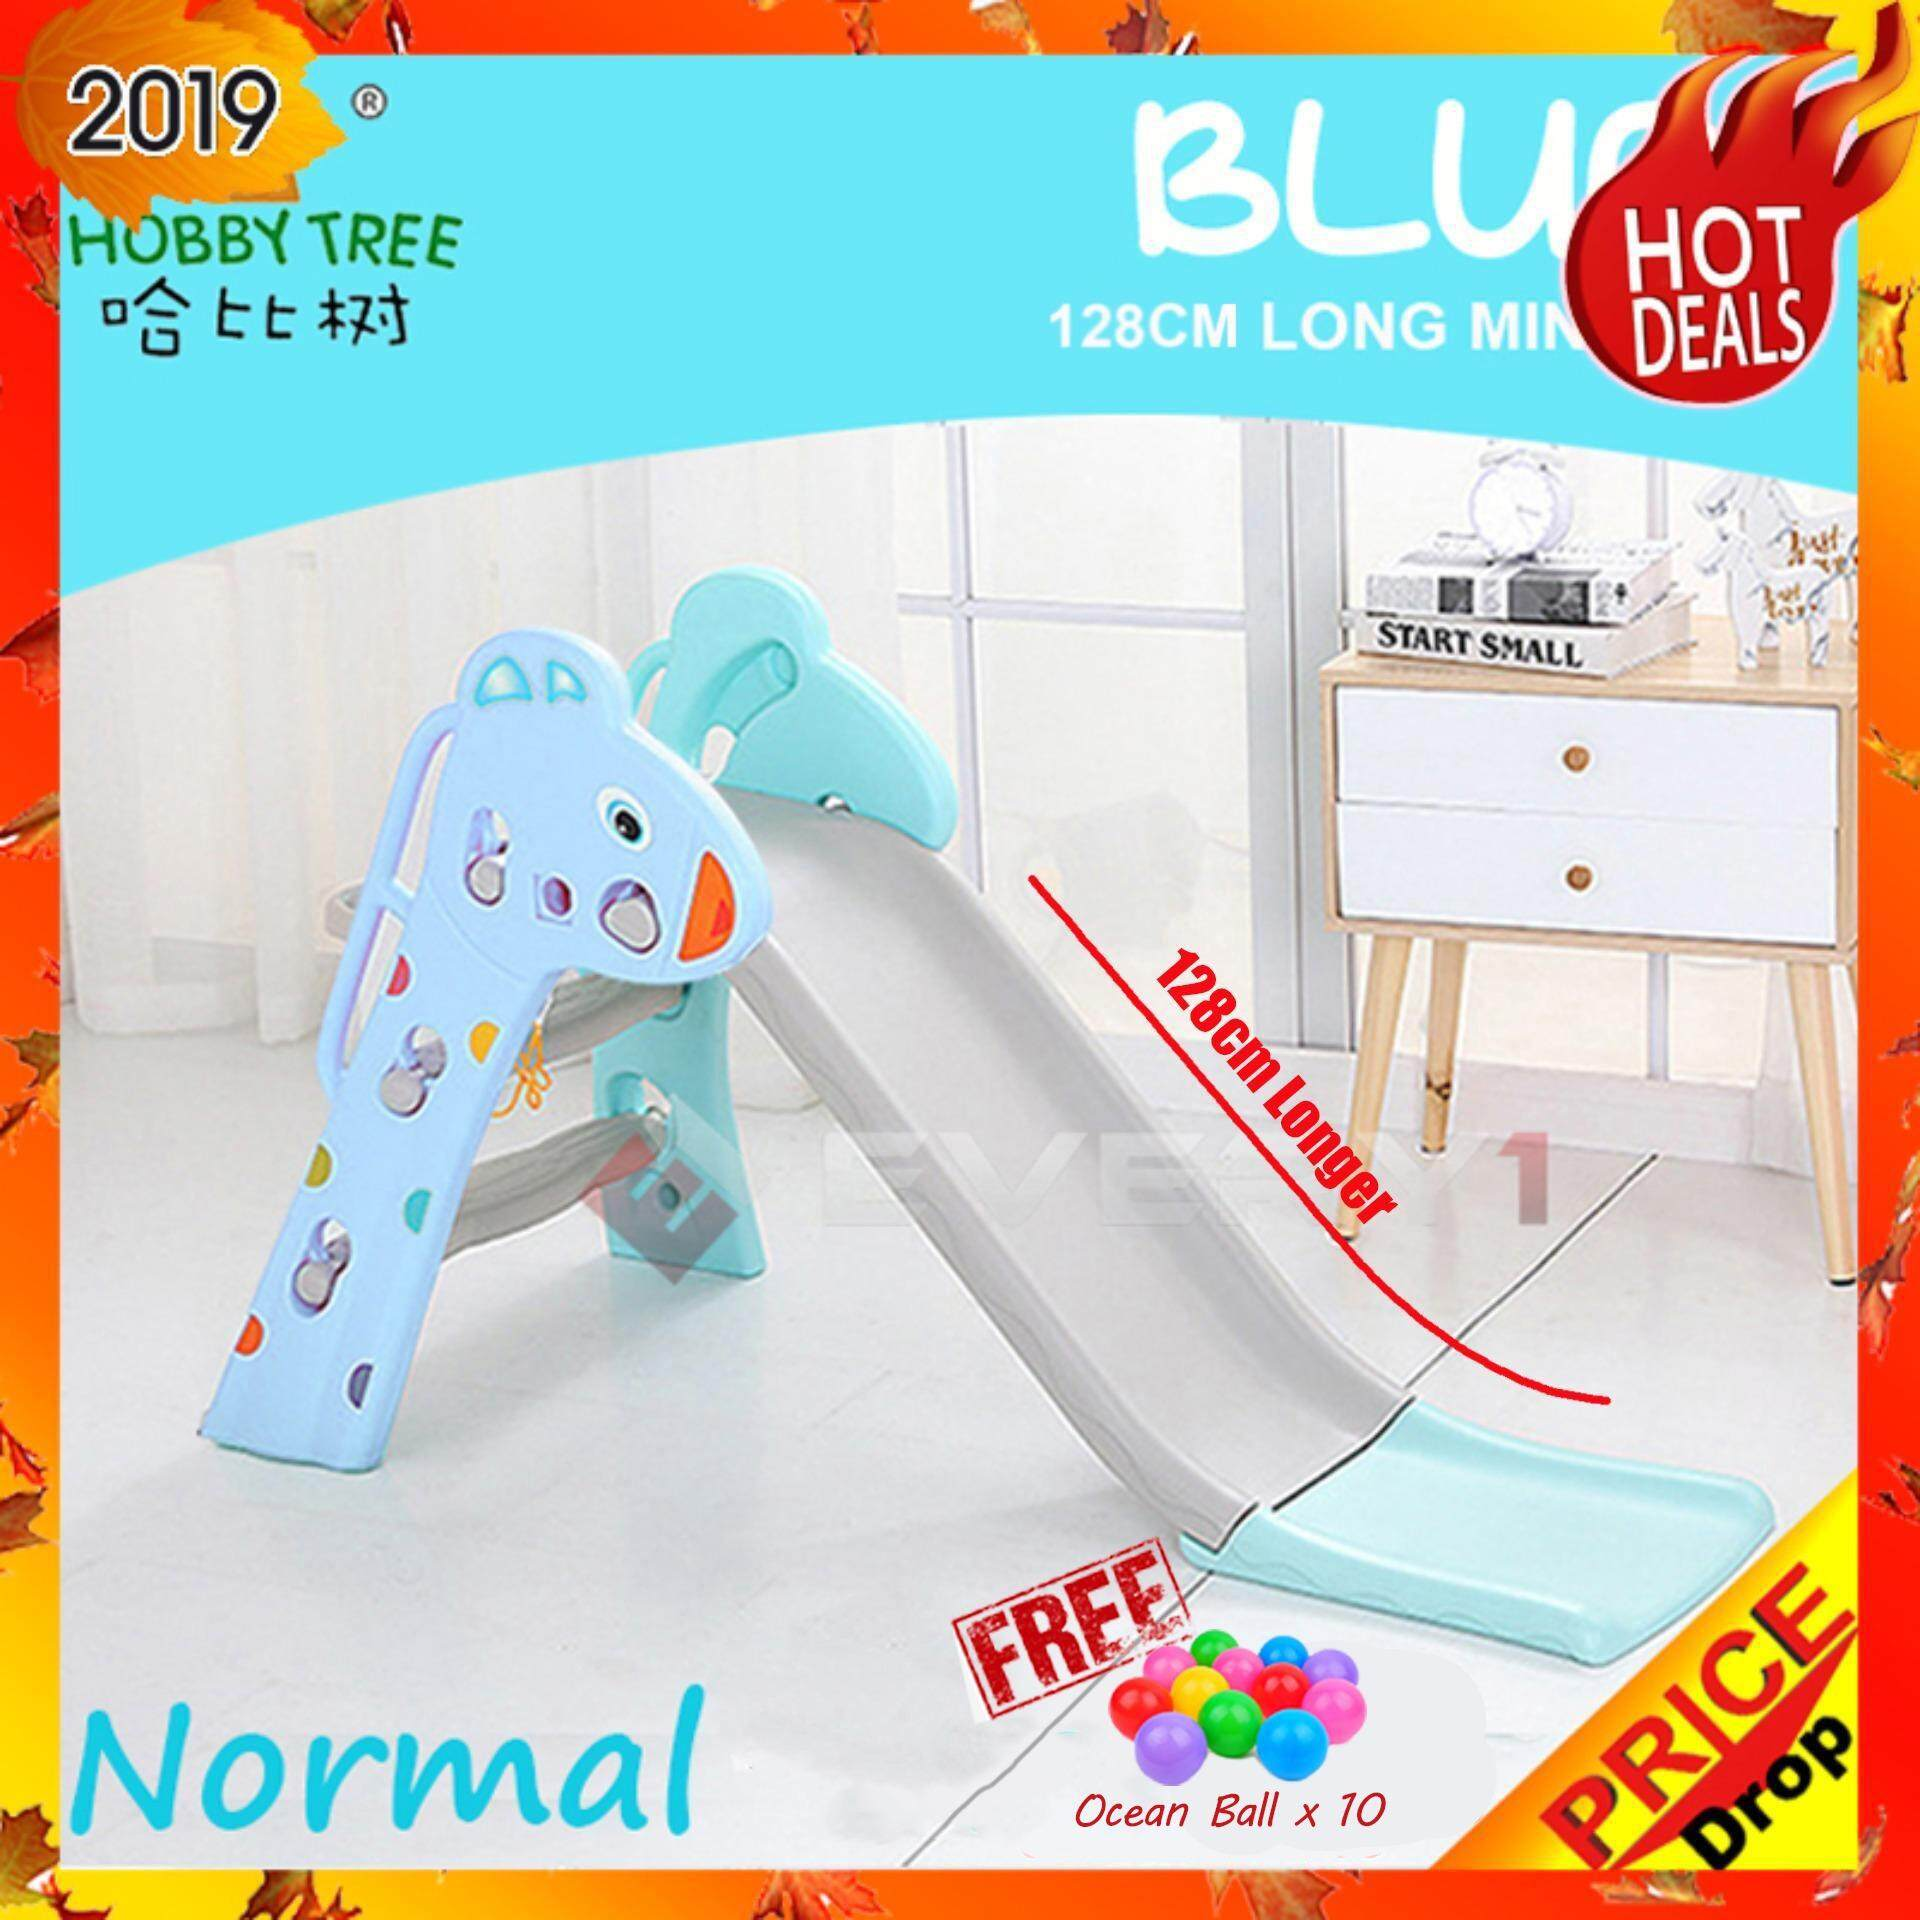 (HOT ITEM) HOBBY TREE (HT80) Indoor Home Playground Extra Safety And  Stability DIY 128 cm Long Children Mini Slide Kids Slide toys for girls